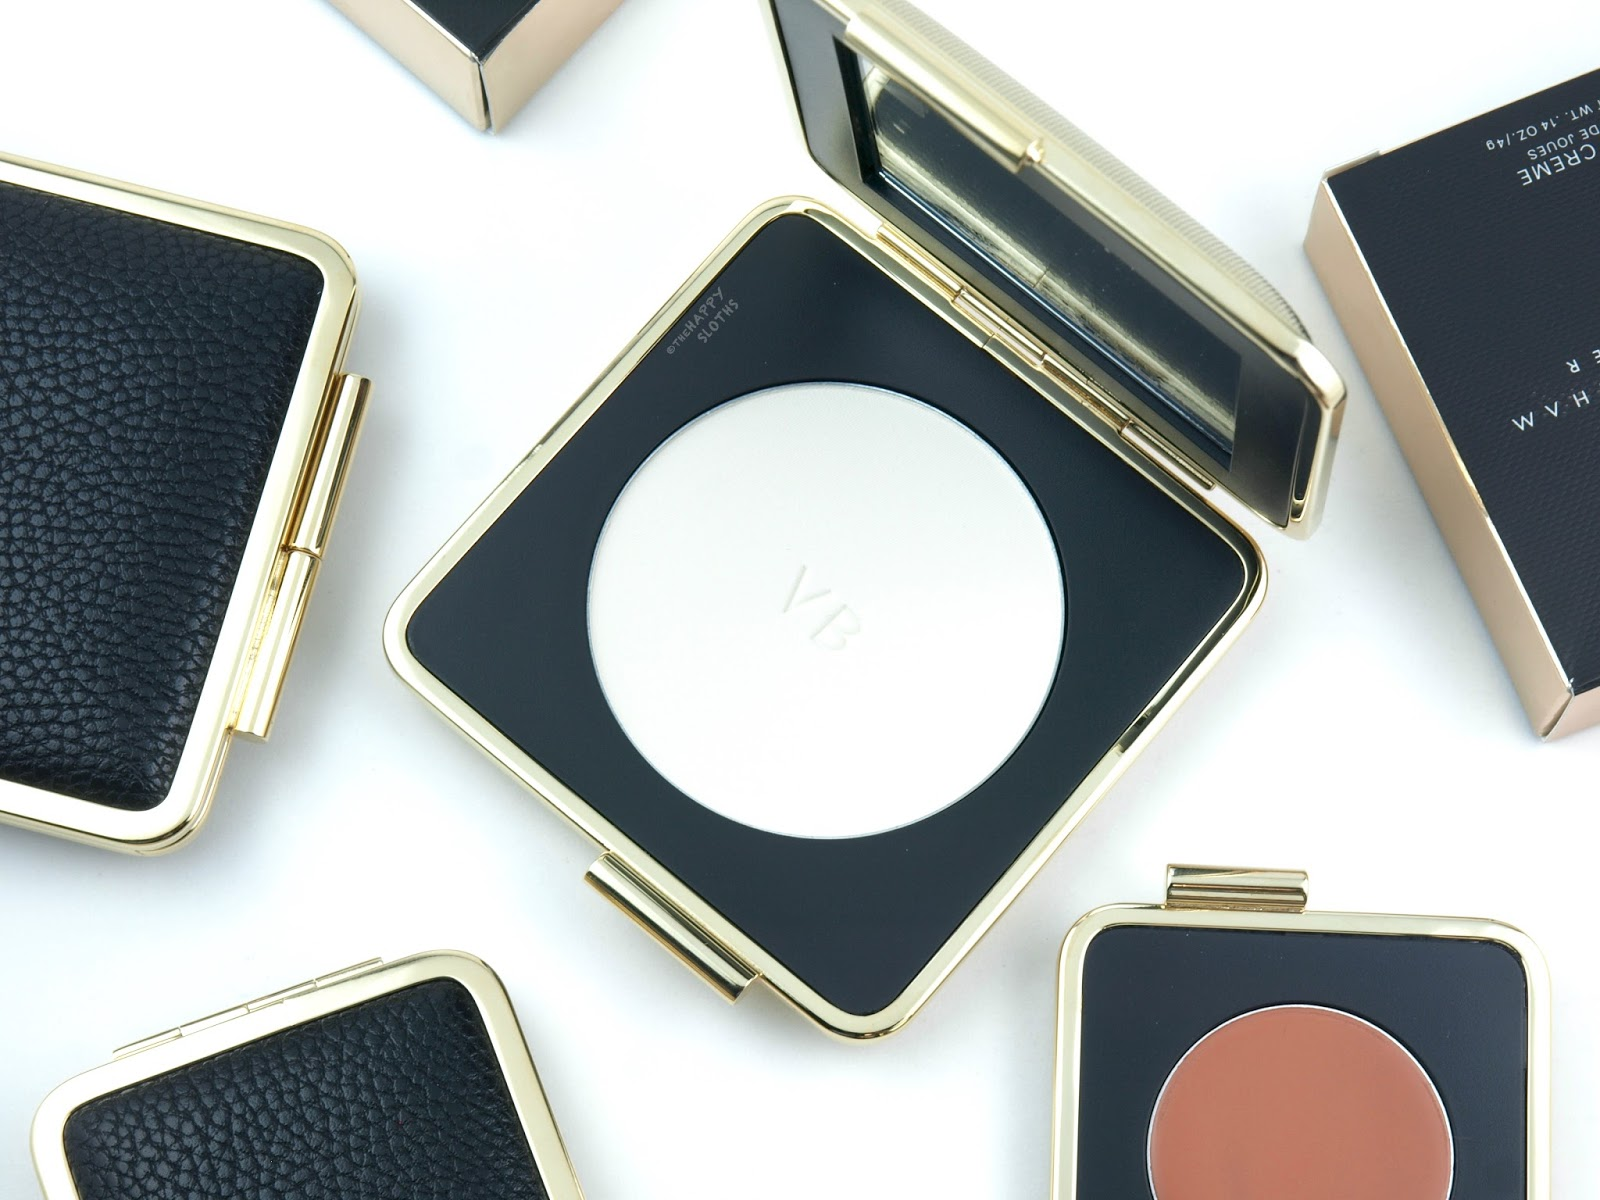 Estee Lauder x Victoria Beckham Fall 2017 Collection | Skin Perfecting Powder: Review and Swatches